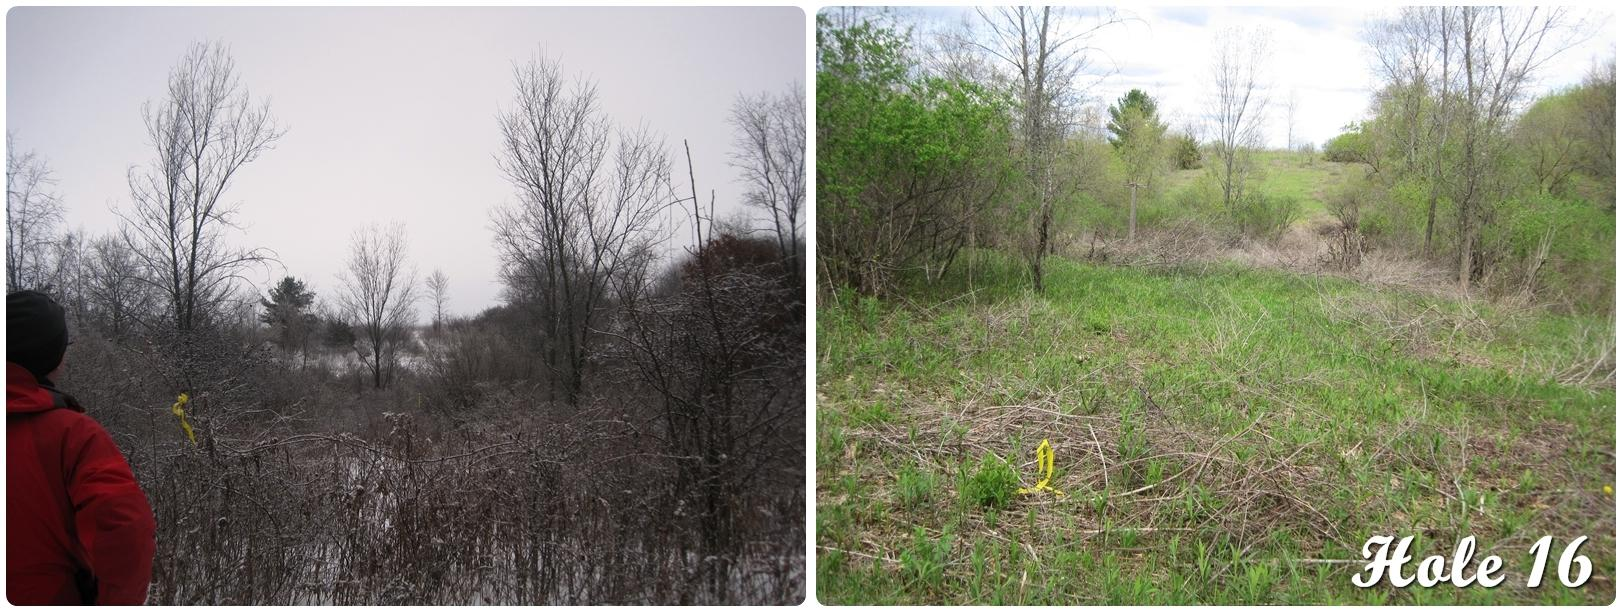 Hole 16 Before & Now